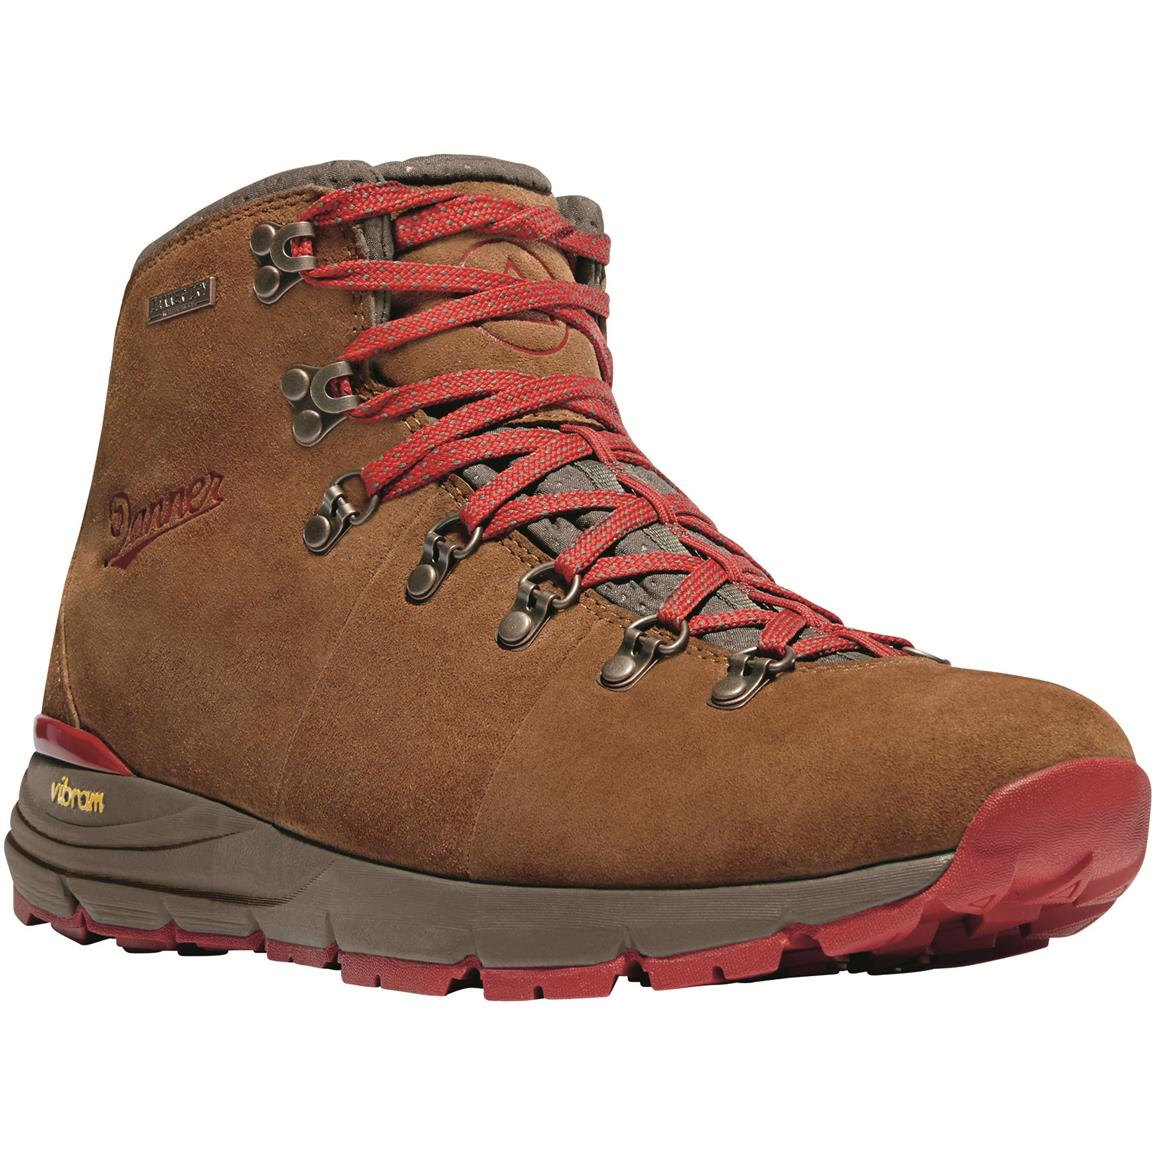 "Danner Mountain 600 4.5"" Men's Suede Waterproof Hiking Boots, Brown/Red"